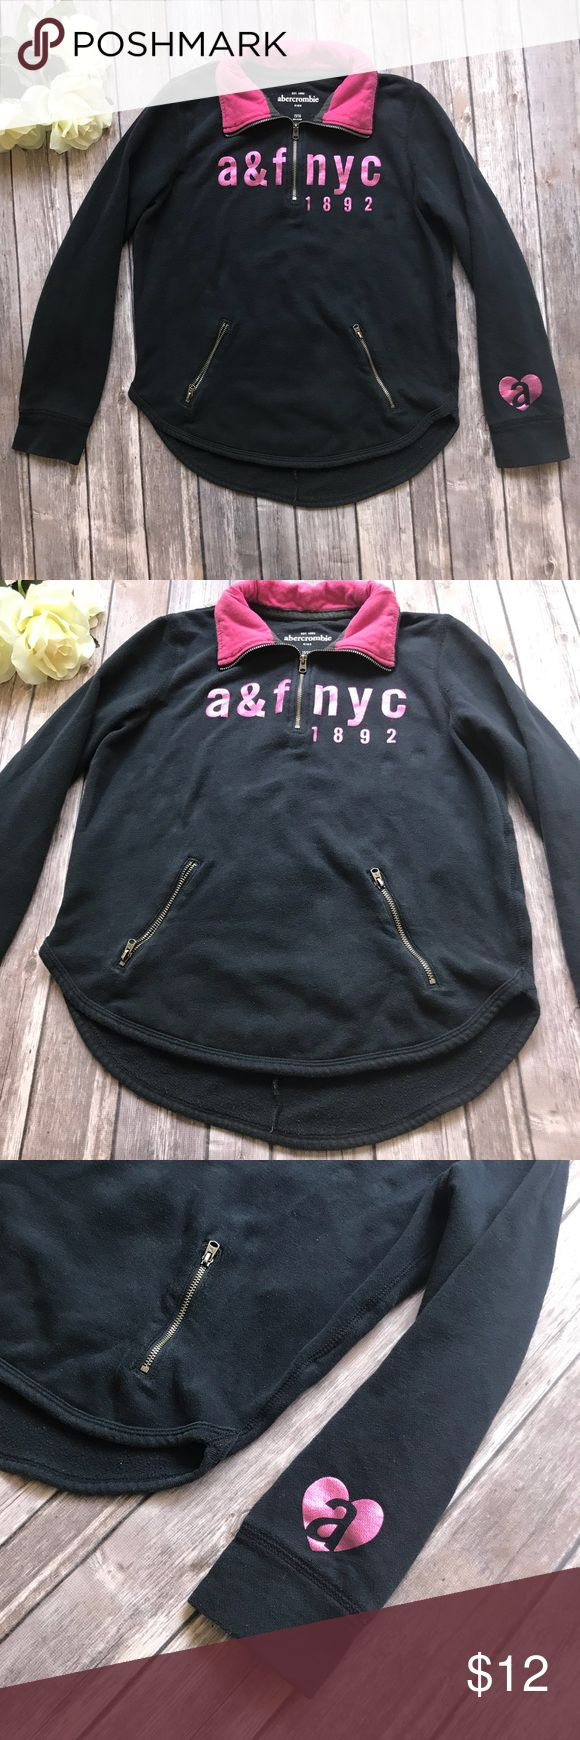 "Abercrombie kids girl navy blue pullover Abercrombie kids pullover  Navy blue with hot pink Size 15/16 Soft and lightweight    Measurements are approx: Bust- 19"" across laying flat  Length - 23""  ***Please look over all pictures, use zoom if needed.  Your satisfaction is important to me.  Please feel free to ask me for additional details***  Top rated seller Fast Shipper  Posh Ambassador Abercombie Kids Shirts & Tops Sweatshirts & Hoodies"